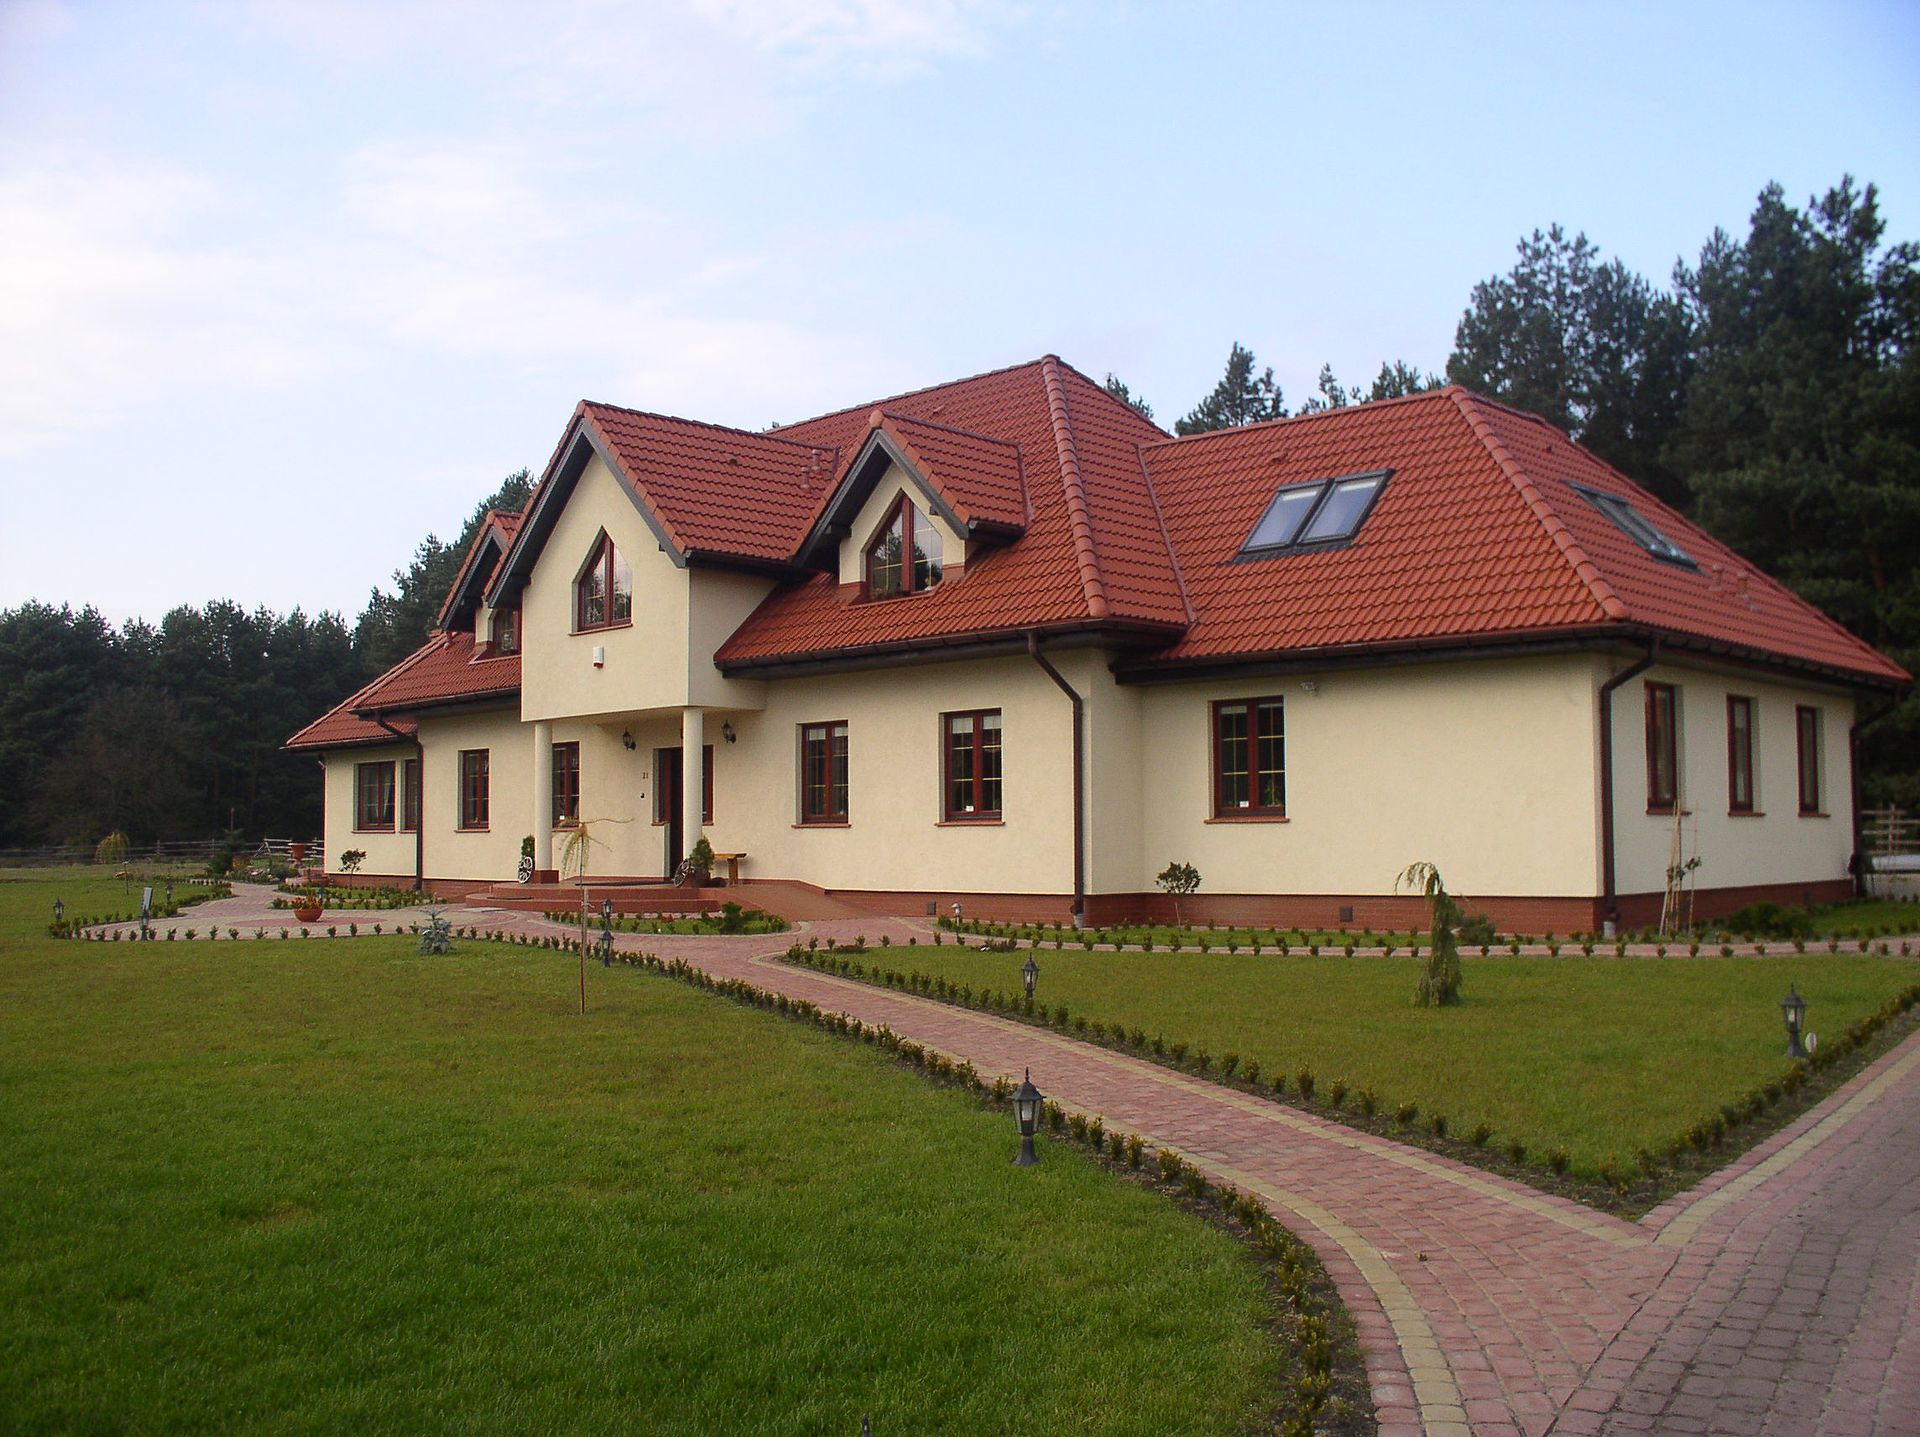 Residential Architecture Poland